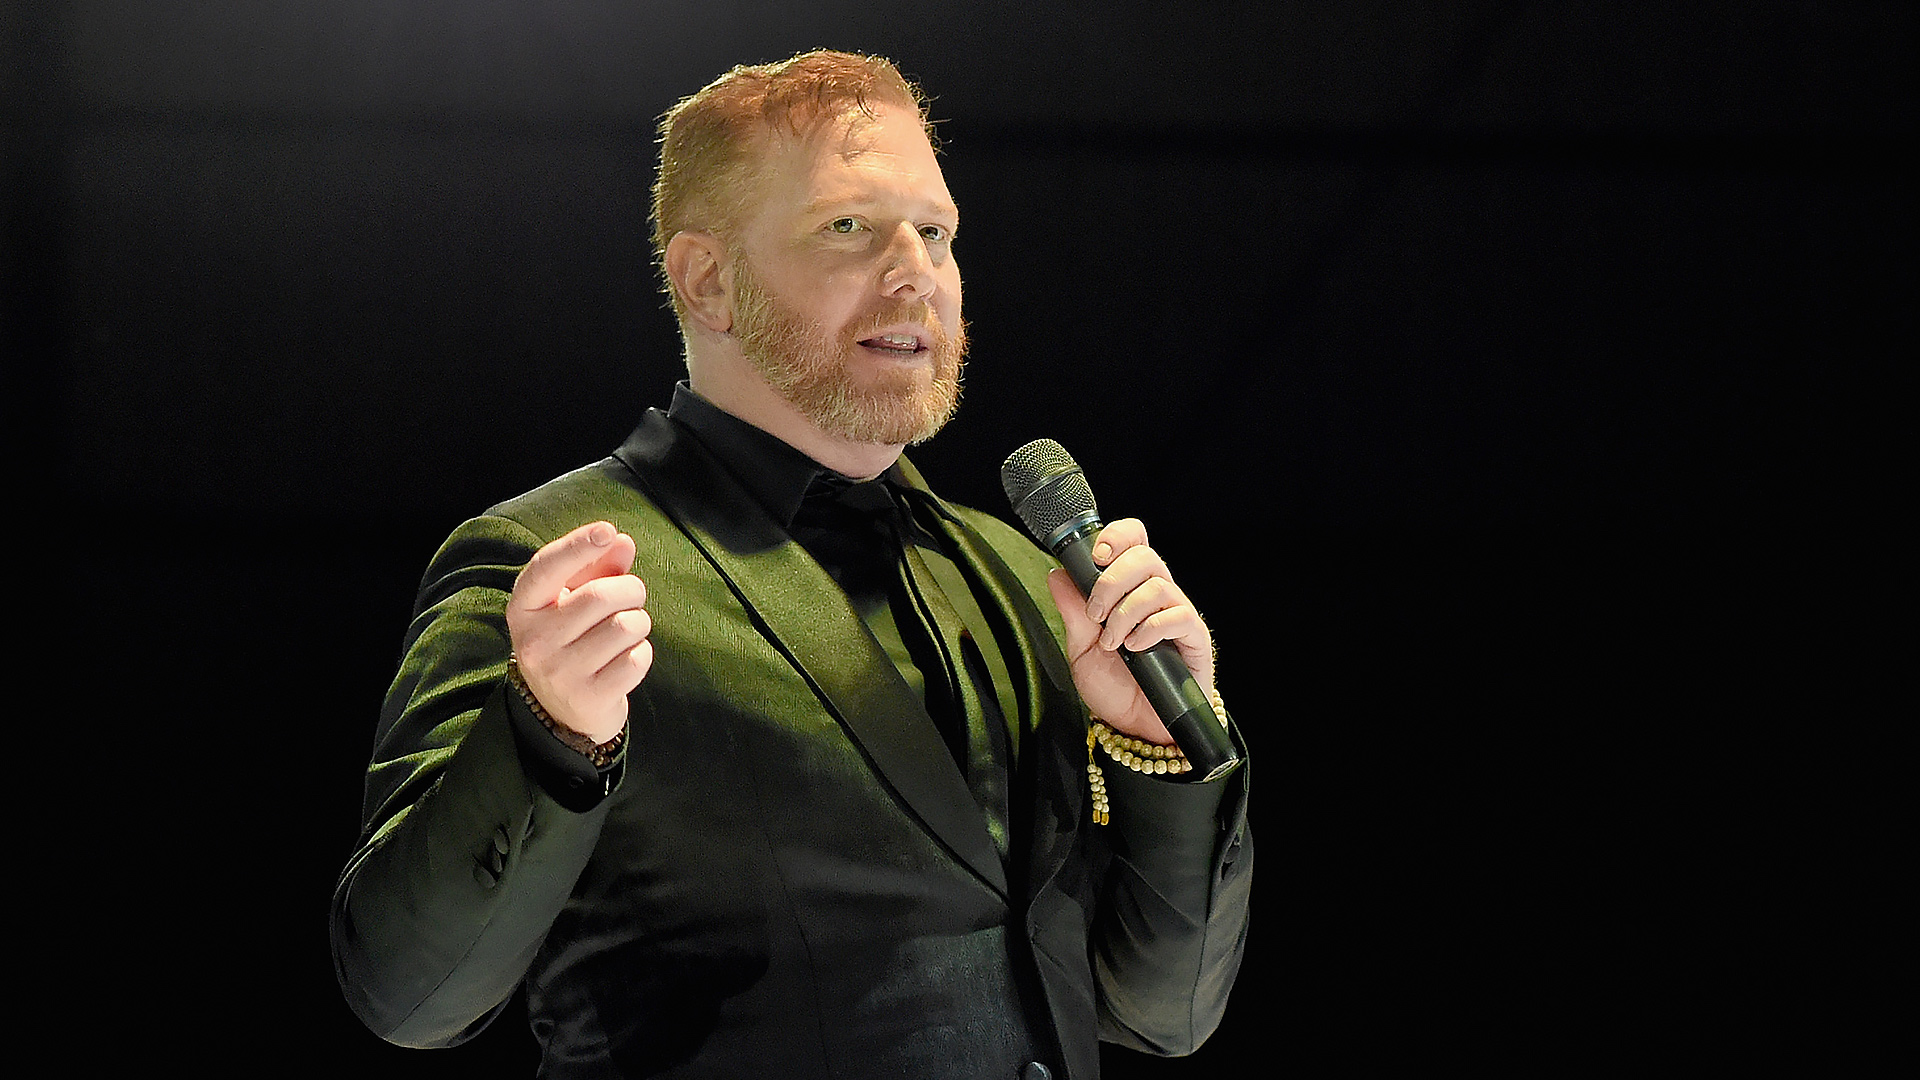 LOS ANGELES, CA - JANUARY 10: Founder and CEO of Relativity Media Ryan Kavanaugh speaks onstage at the 8th Annual HEAVEN Gala presented by Art of Elysium and Samsung Galaxy at Hangar 8 on January 10, 2015 in Los Angeles, California. (Photo by Michael Buckner/Getty Images for Art of Elysium)